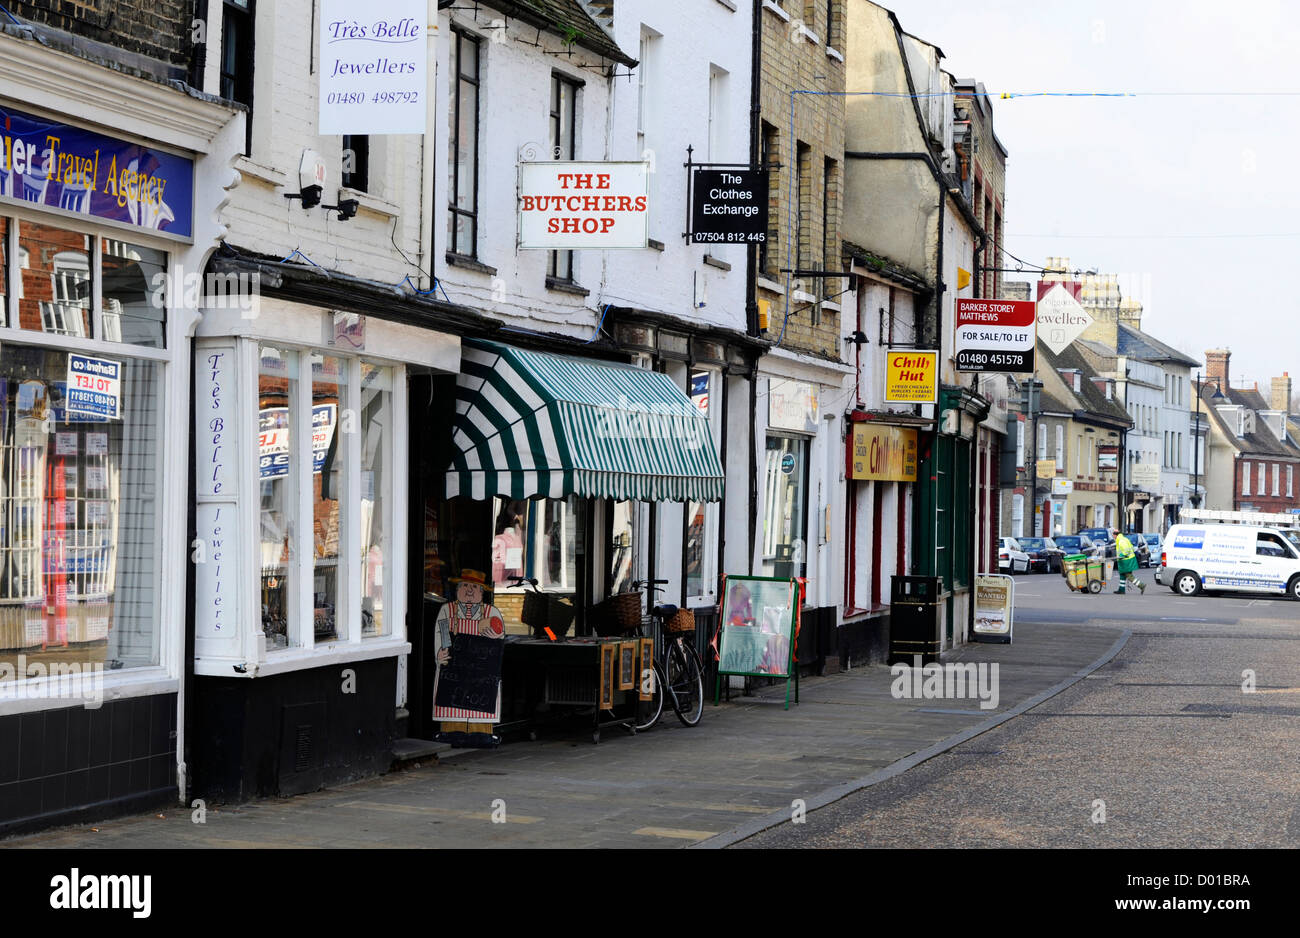 St Ives, Cambs. - Stock Image